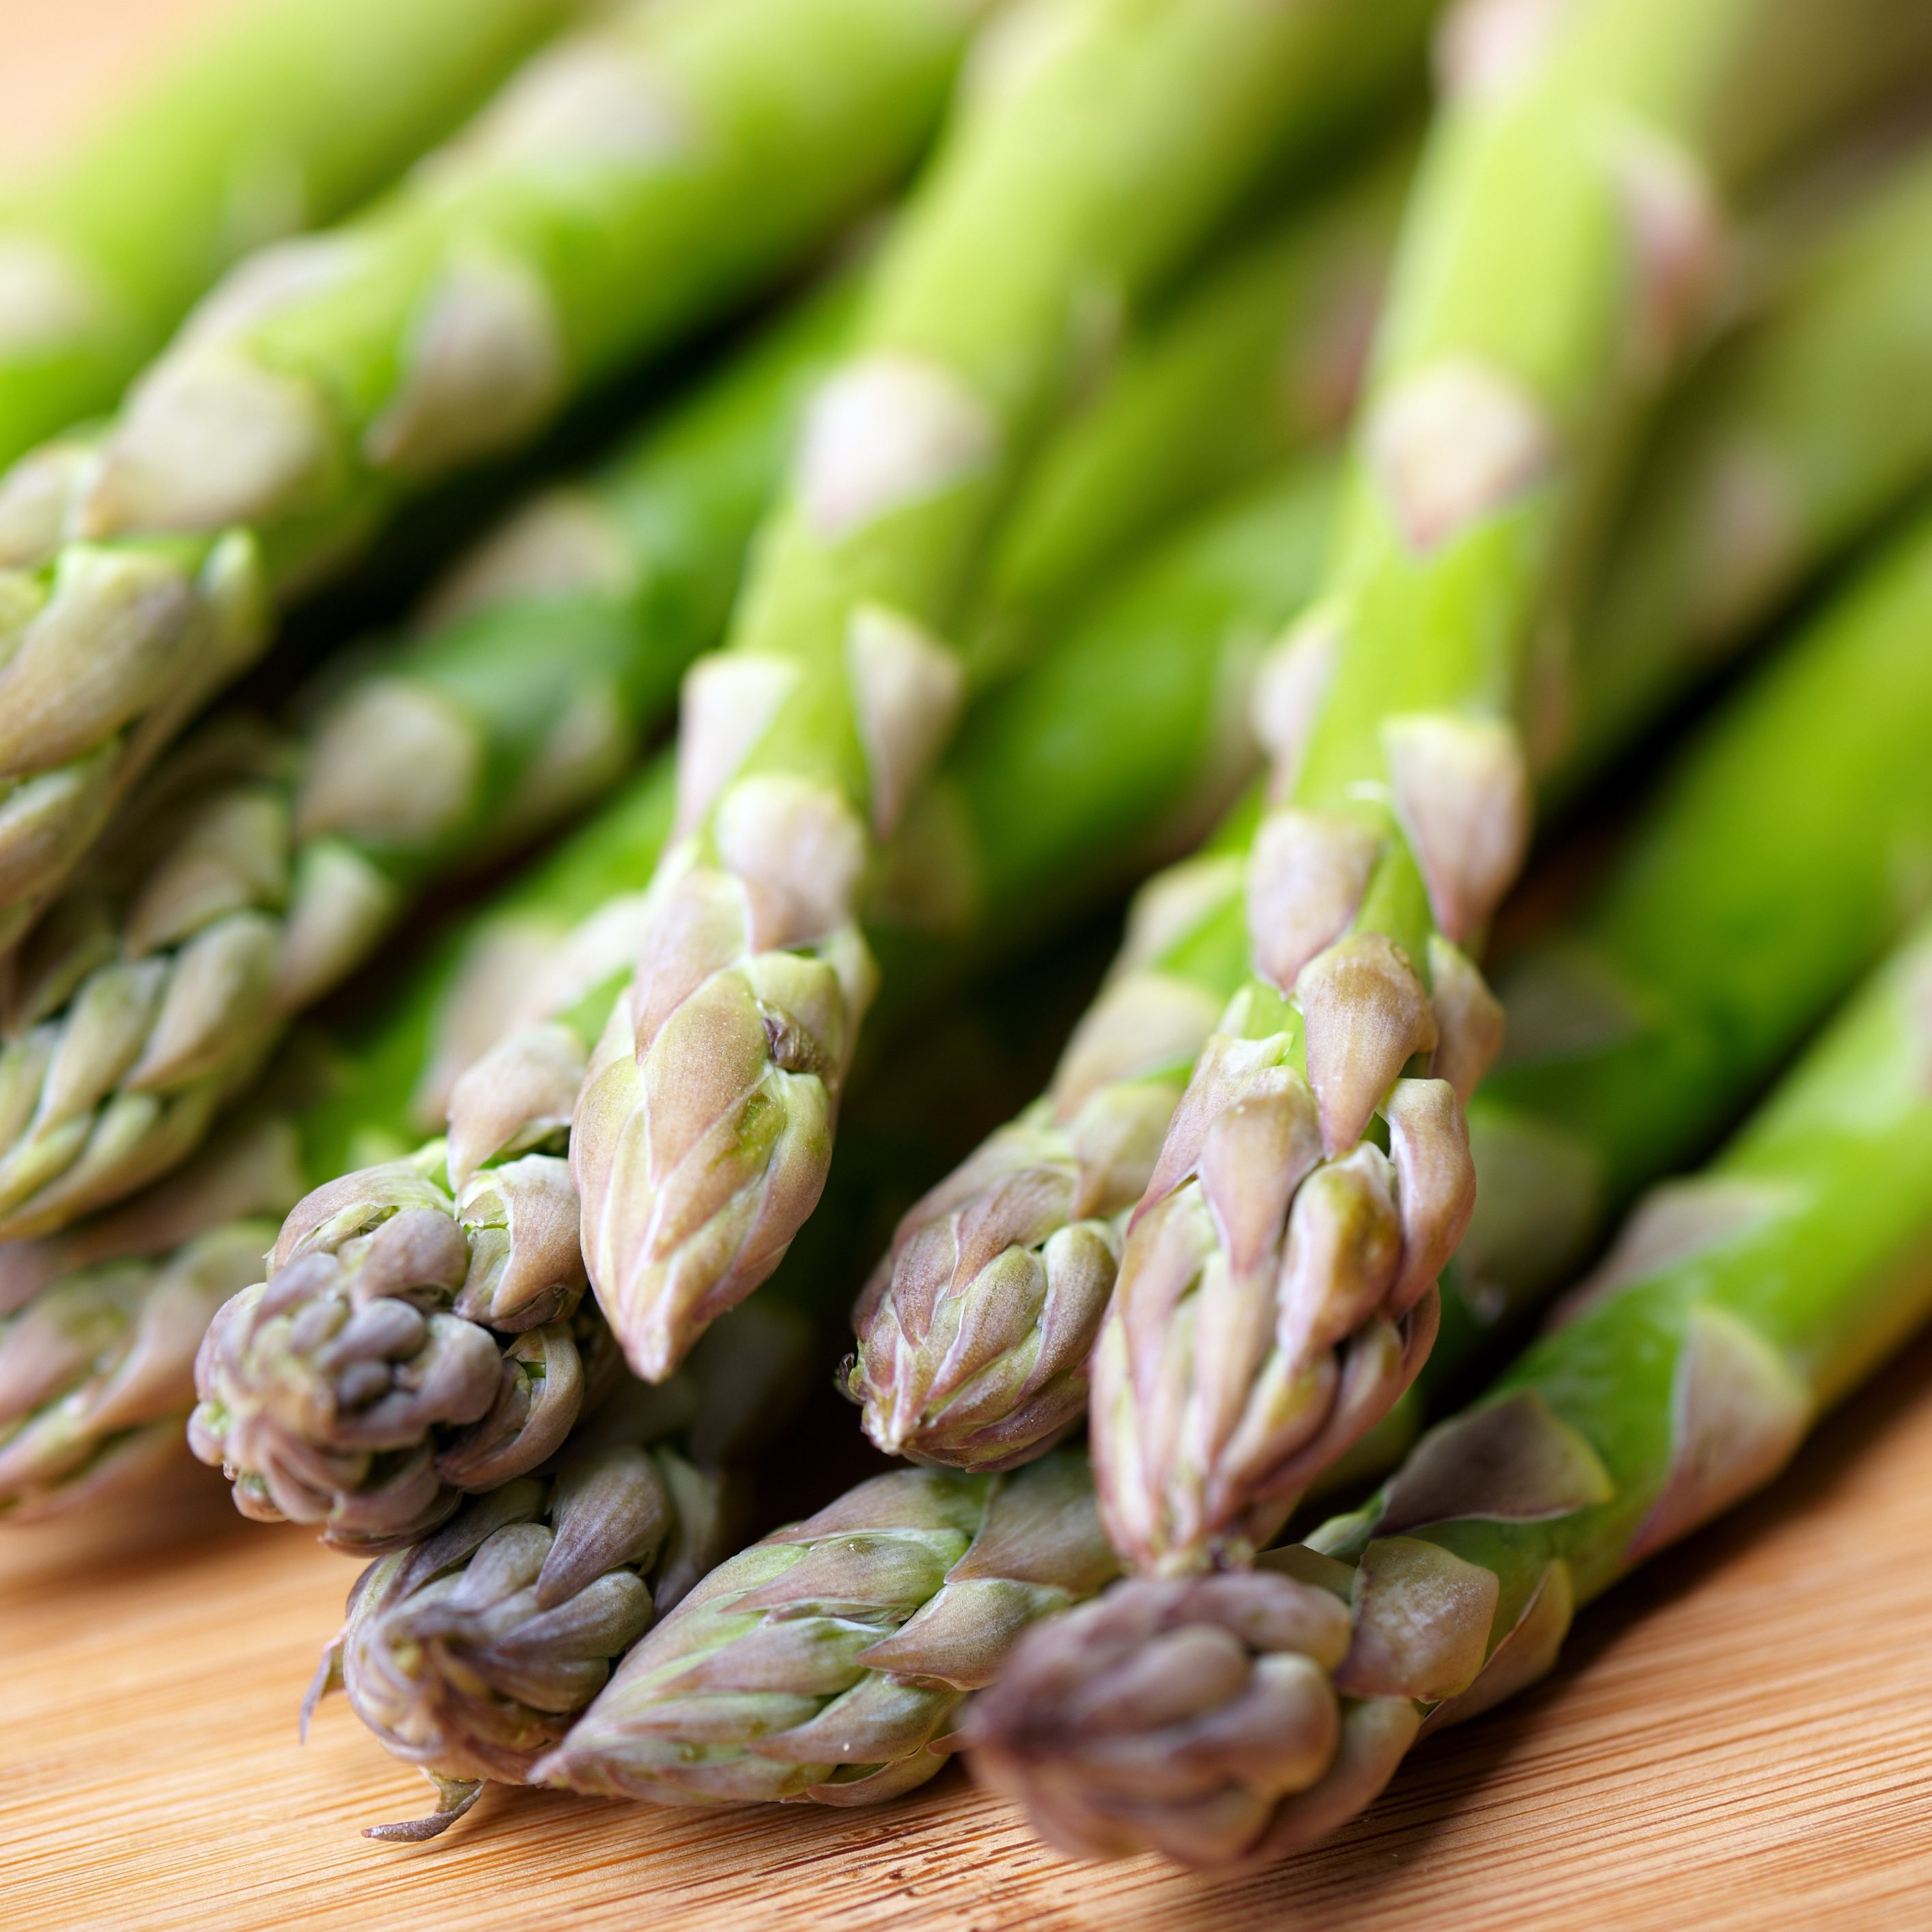 Asparagus Health Benefits and Nutrition Facts